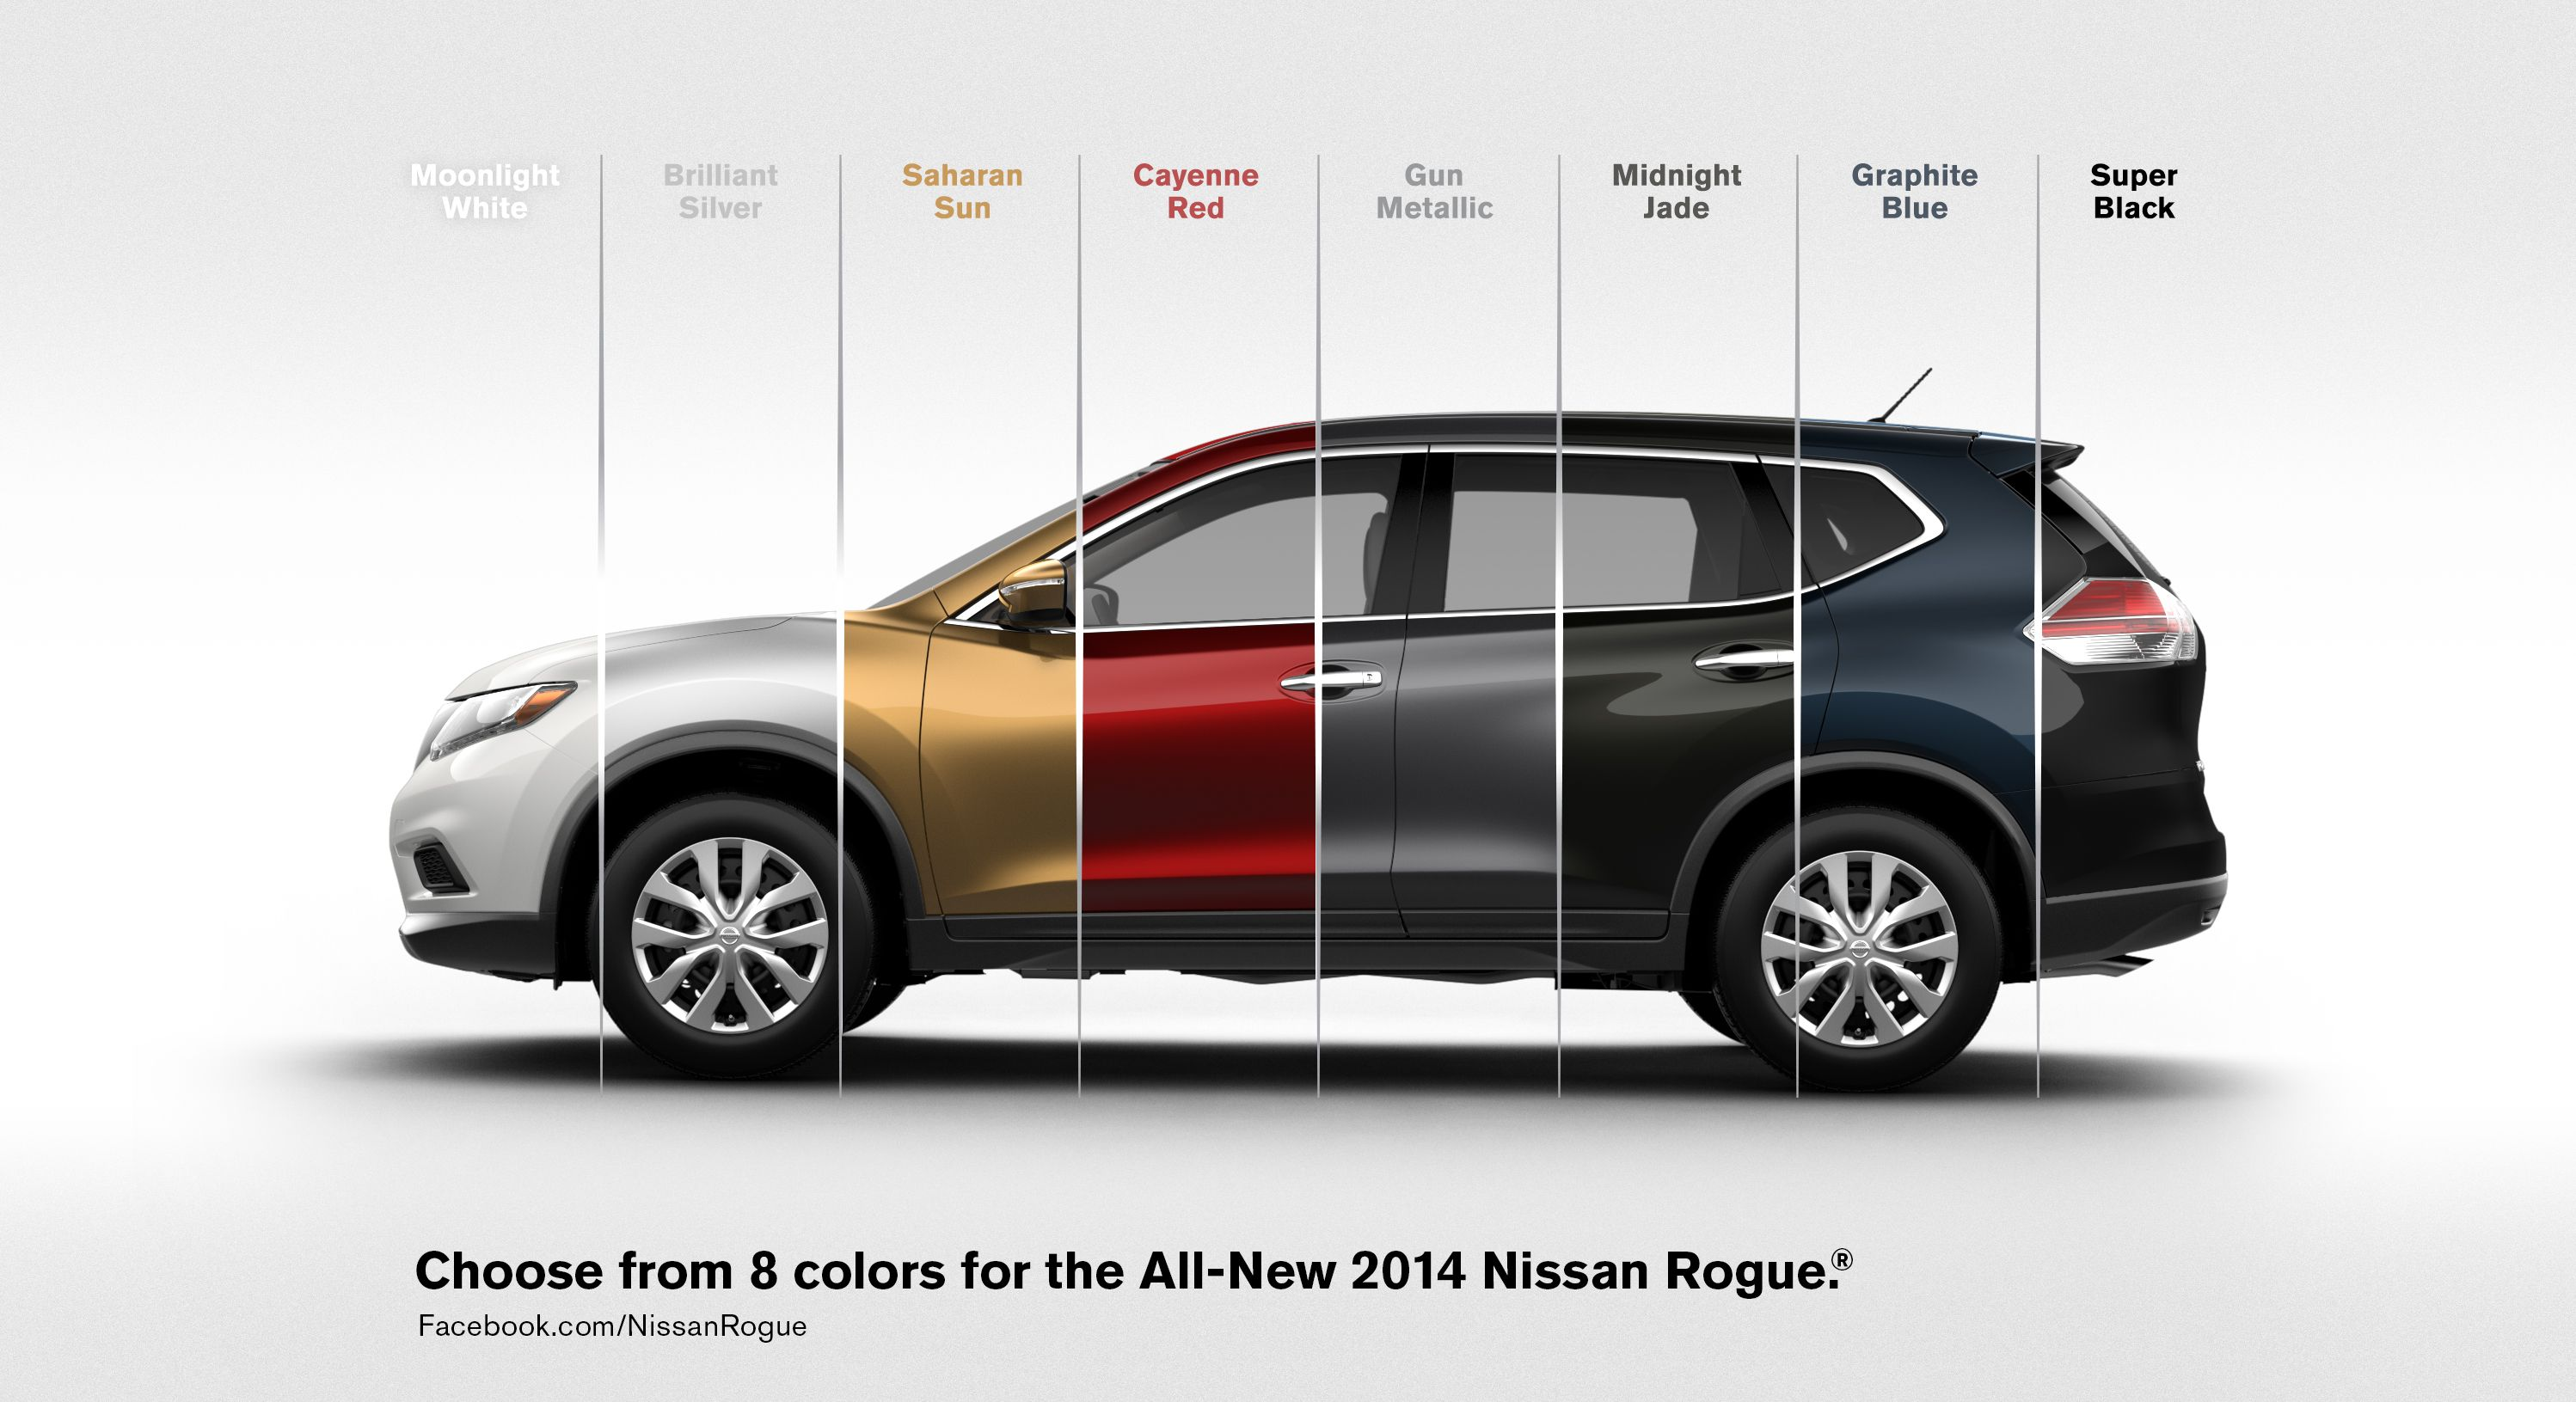 2017 nissan rogue white   Cars   Pinterest   Nissan rogue  Rogues and Nissan2017 nissan rogue white   Cars   Pinterest   Nissan rogue  Rogues  . New Colors For 2013. Home Design Ideas